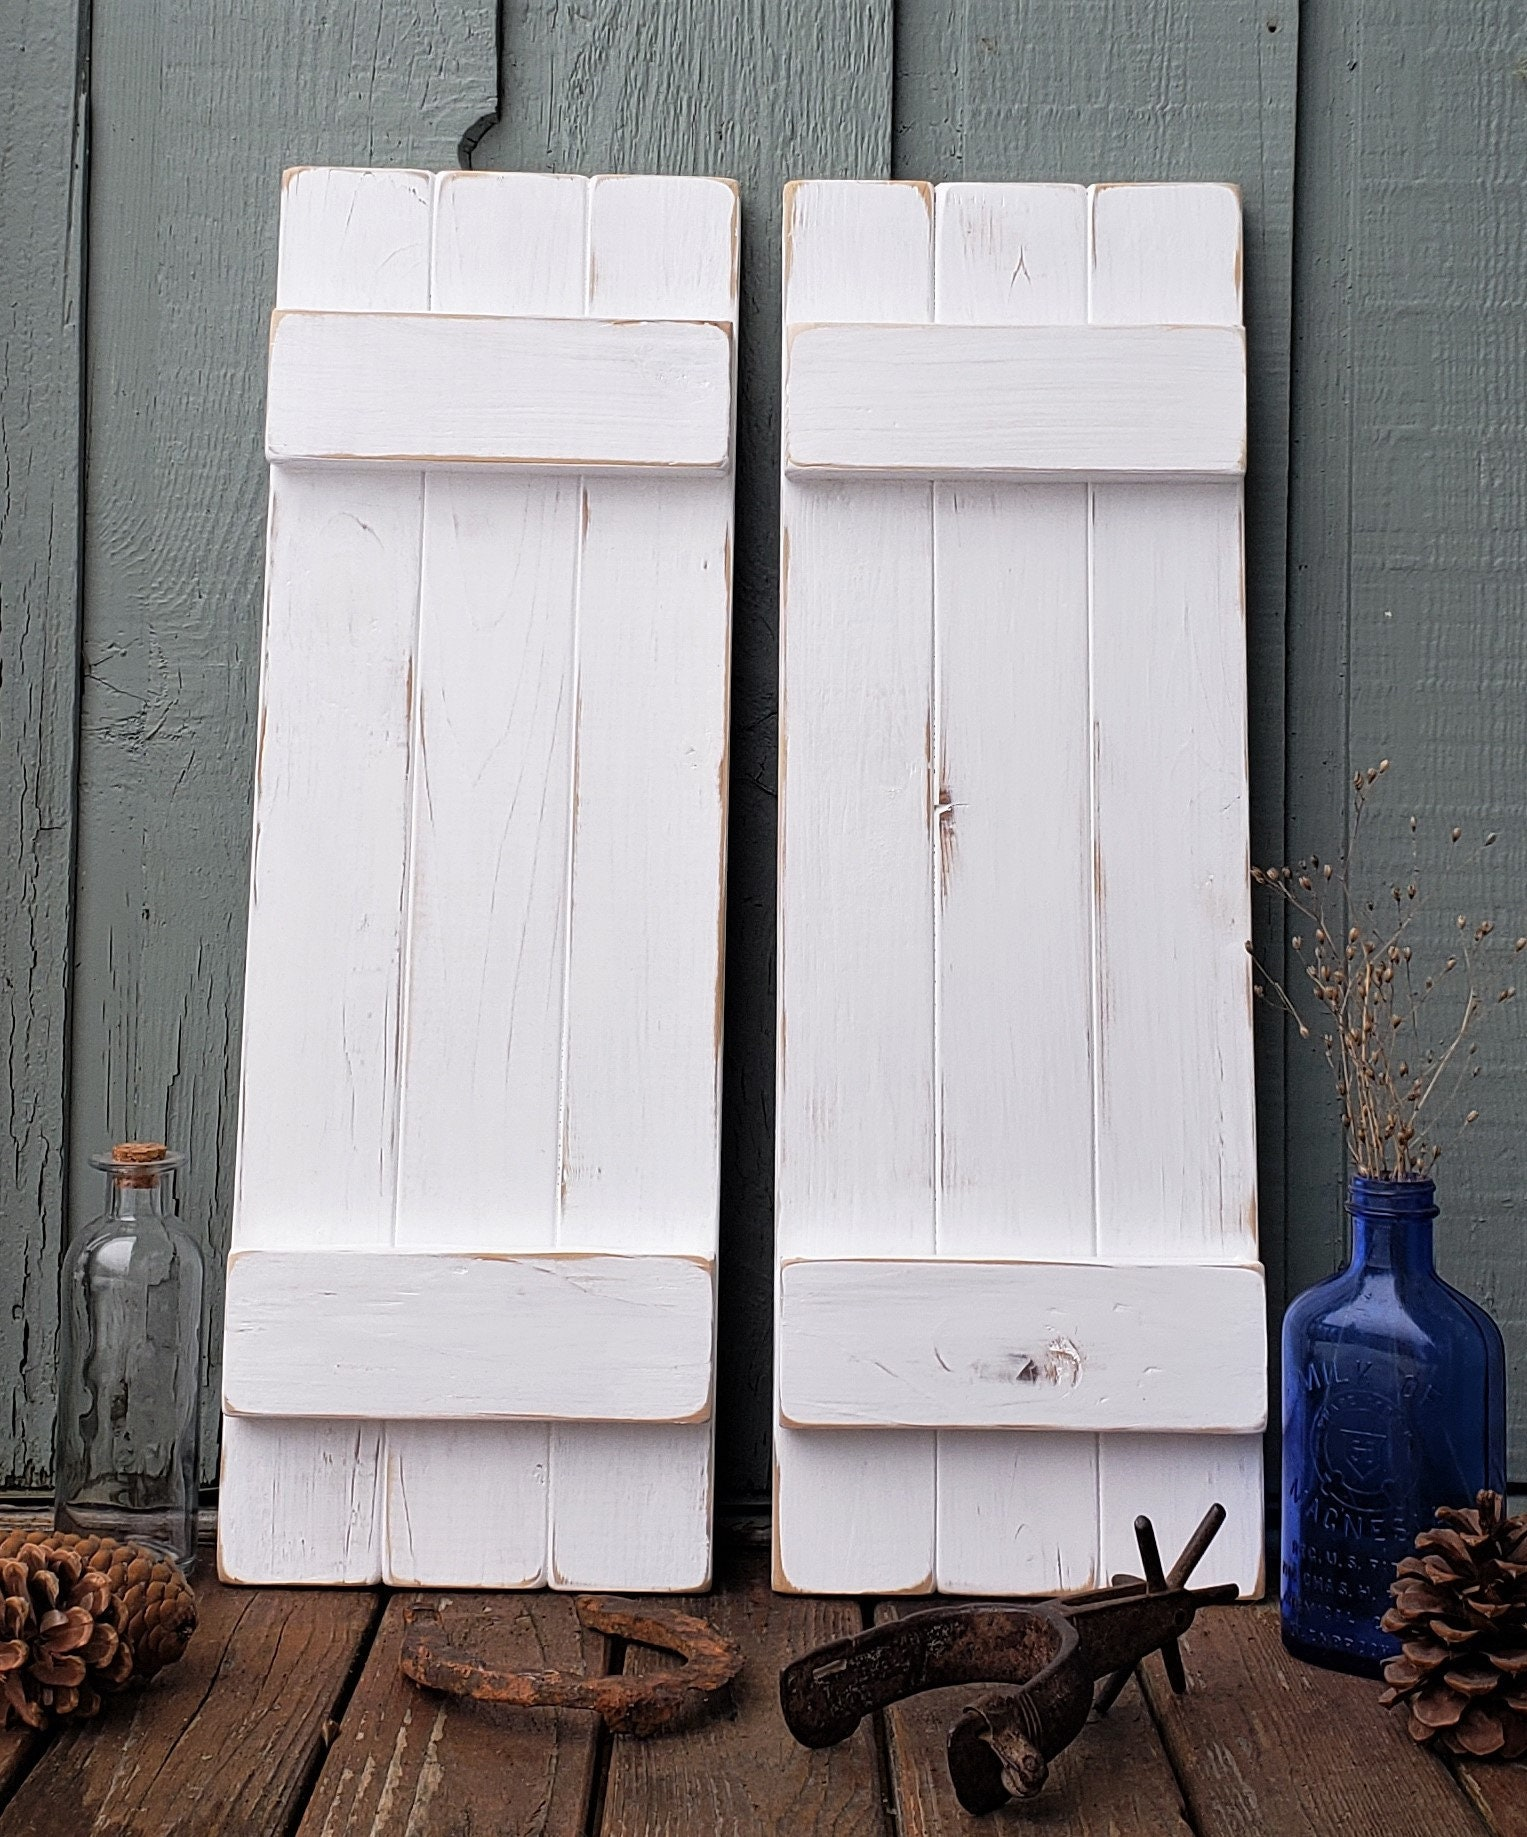 Distressed White Painted Wood Shutters Rustic Wood Shutters Interior Wall Decor Farmhouse Decor Reclaimed Wood Board And Batten